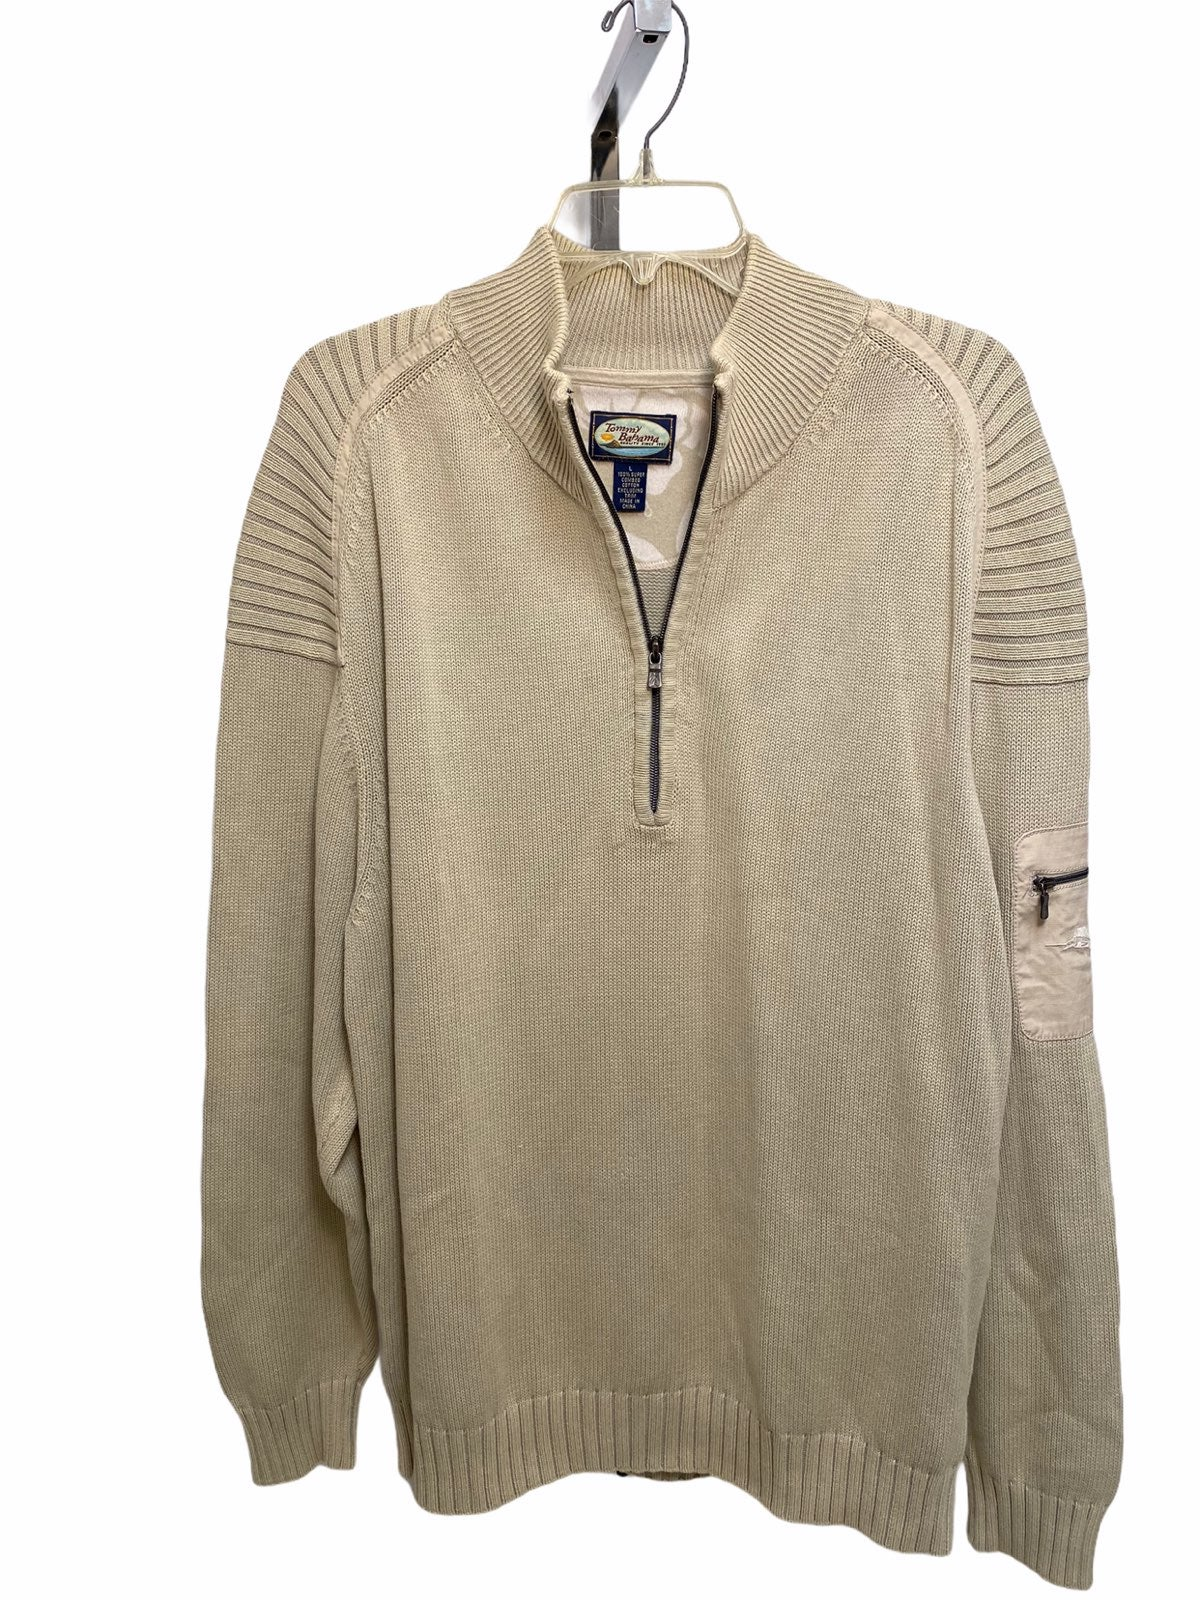 Men's Tommy Bahama Pullover Sweater